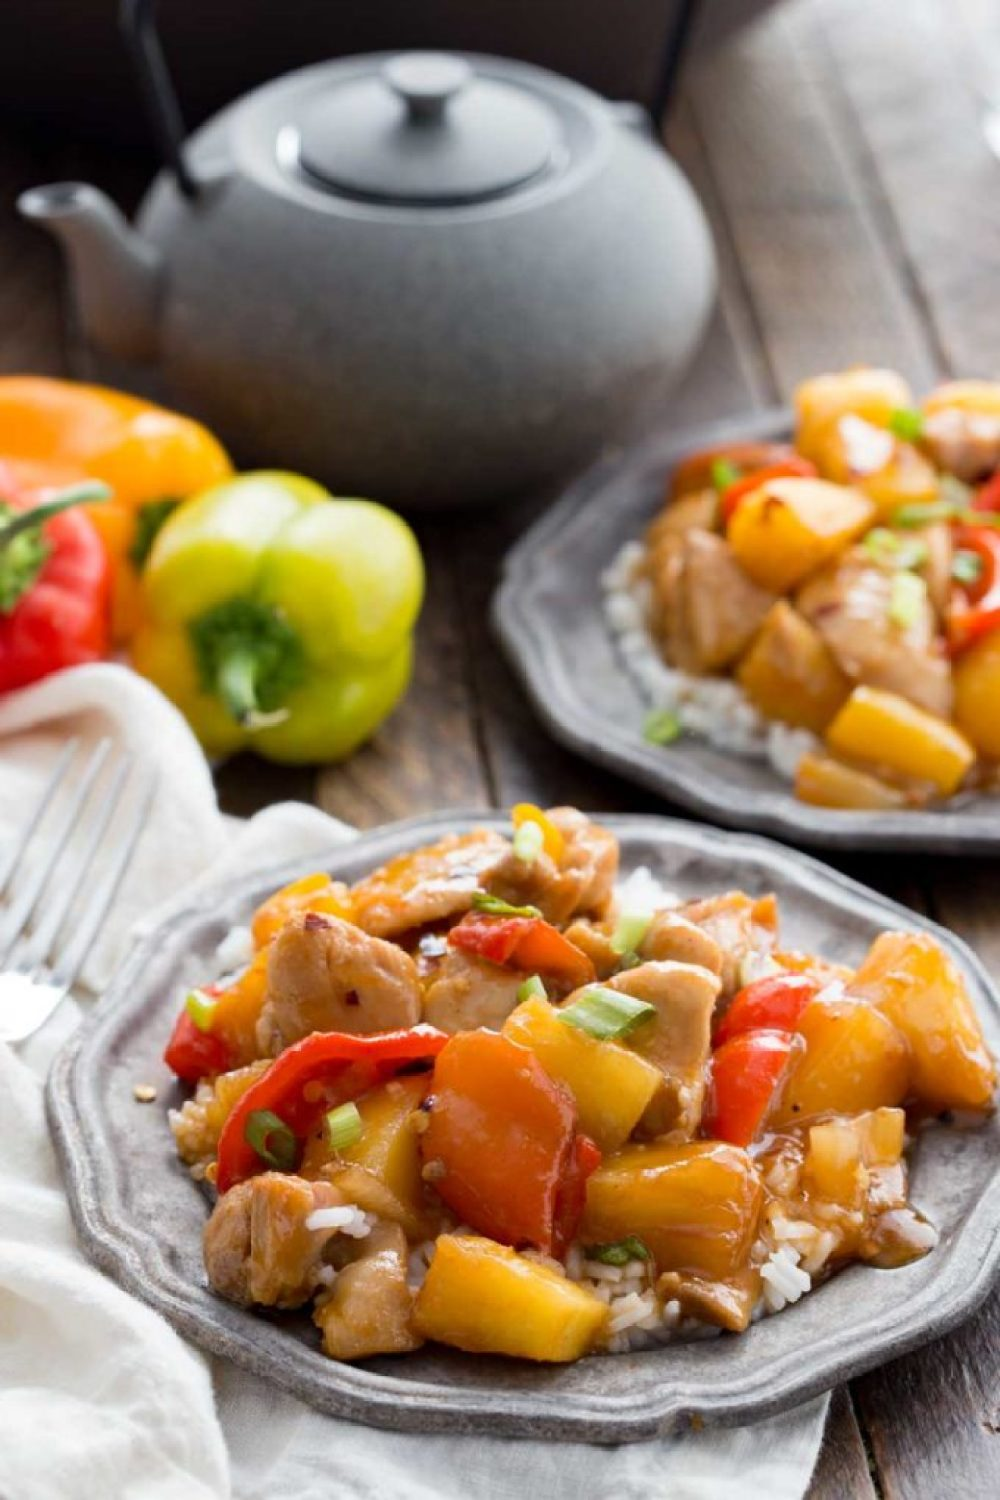 Pineapple Firecracker Chicken is a classic firecracker chicken with a sweet pineapple twist. This savory dinner is slathered in a sweet heat sauce you won't be able to get enough of. Great midweek meal.